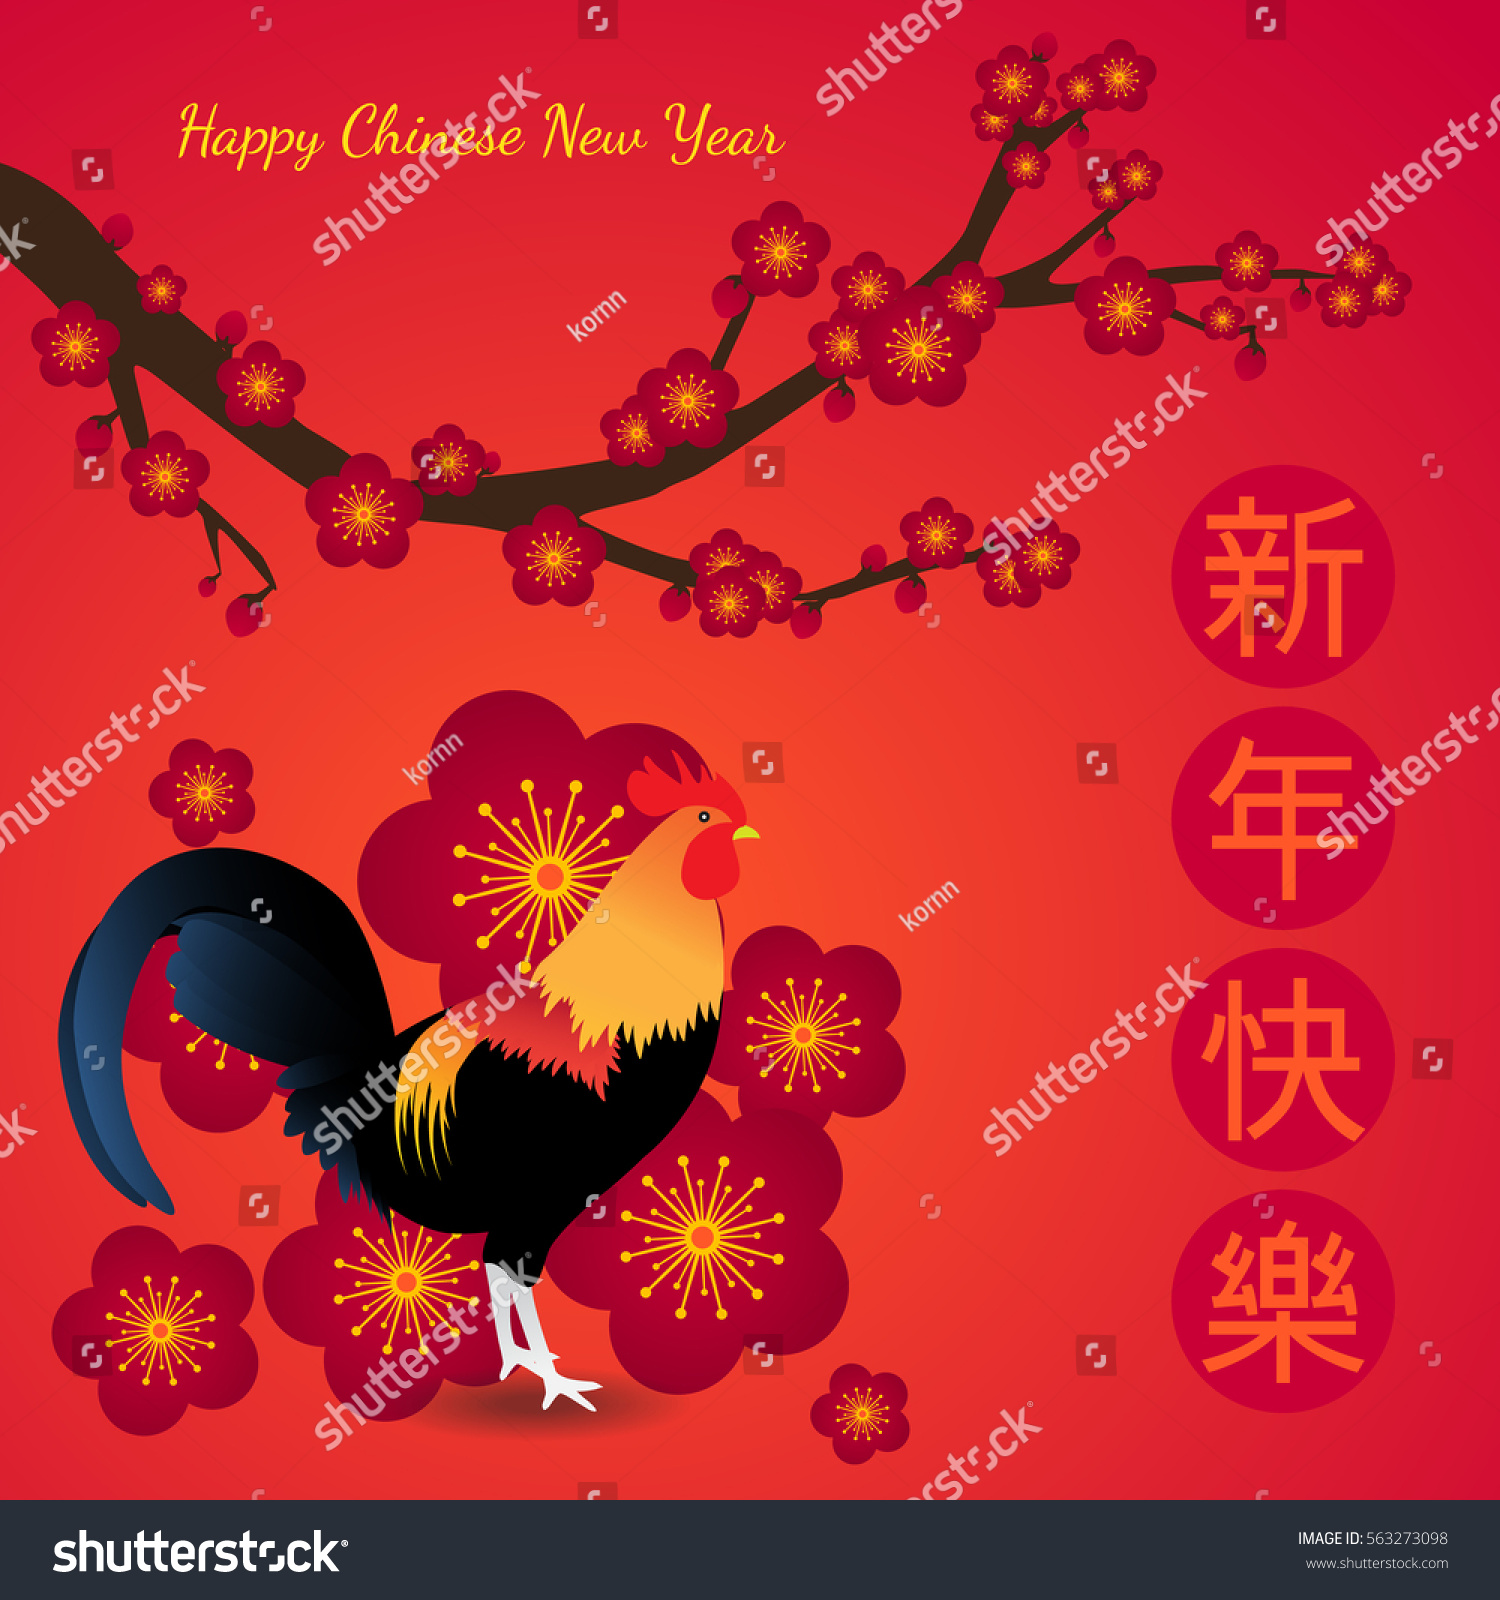 happy chinese new year 2017 background wallpaper card chinese translation happy new year